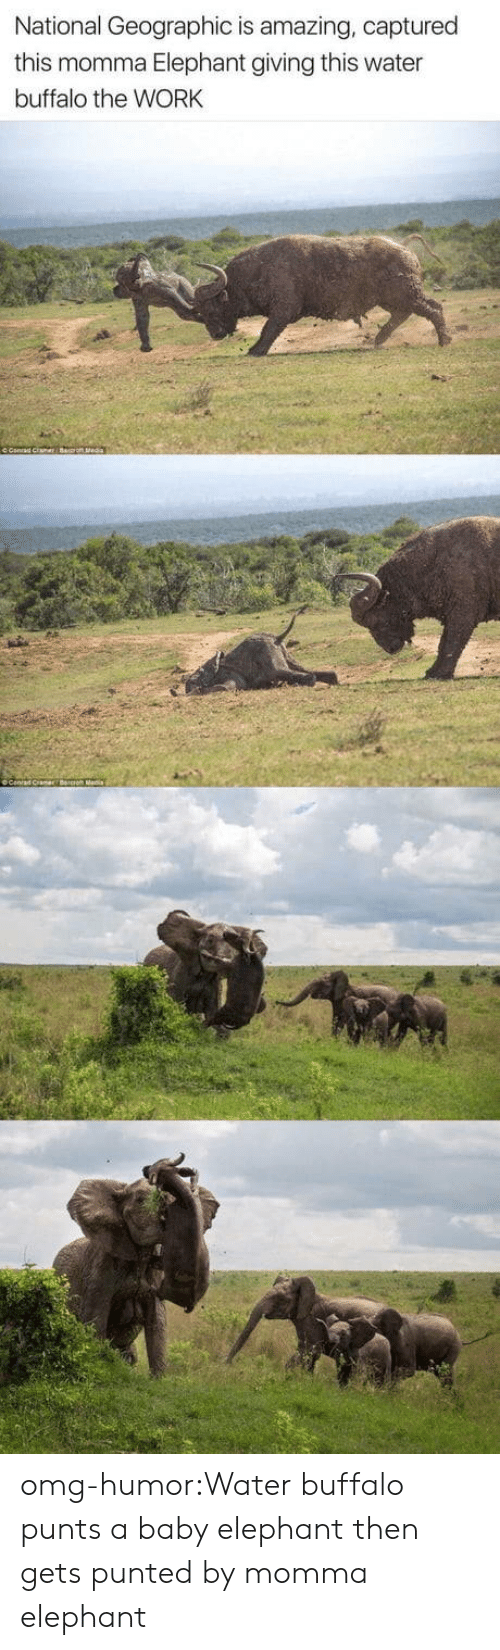 Baby Elephant: National Geographic is amazing, captured  this momma Elephant giving this water  buffalo the WORK omg-humor:Water buffalo punts a baby elephant then gets punted by momma elephant